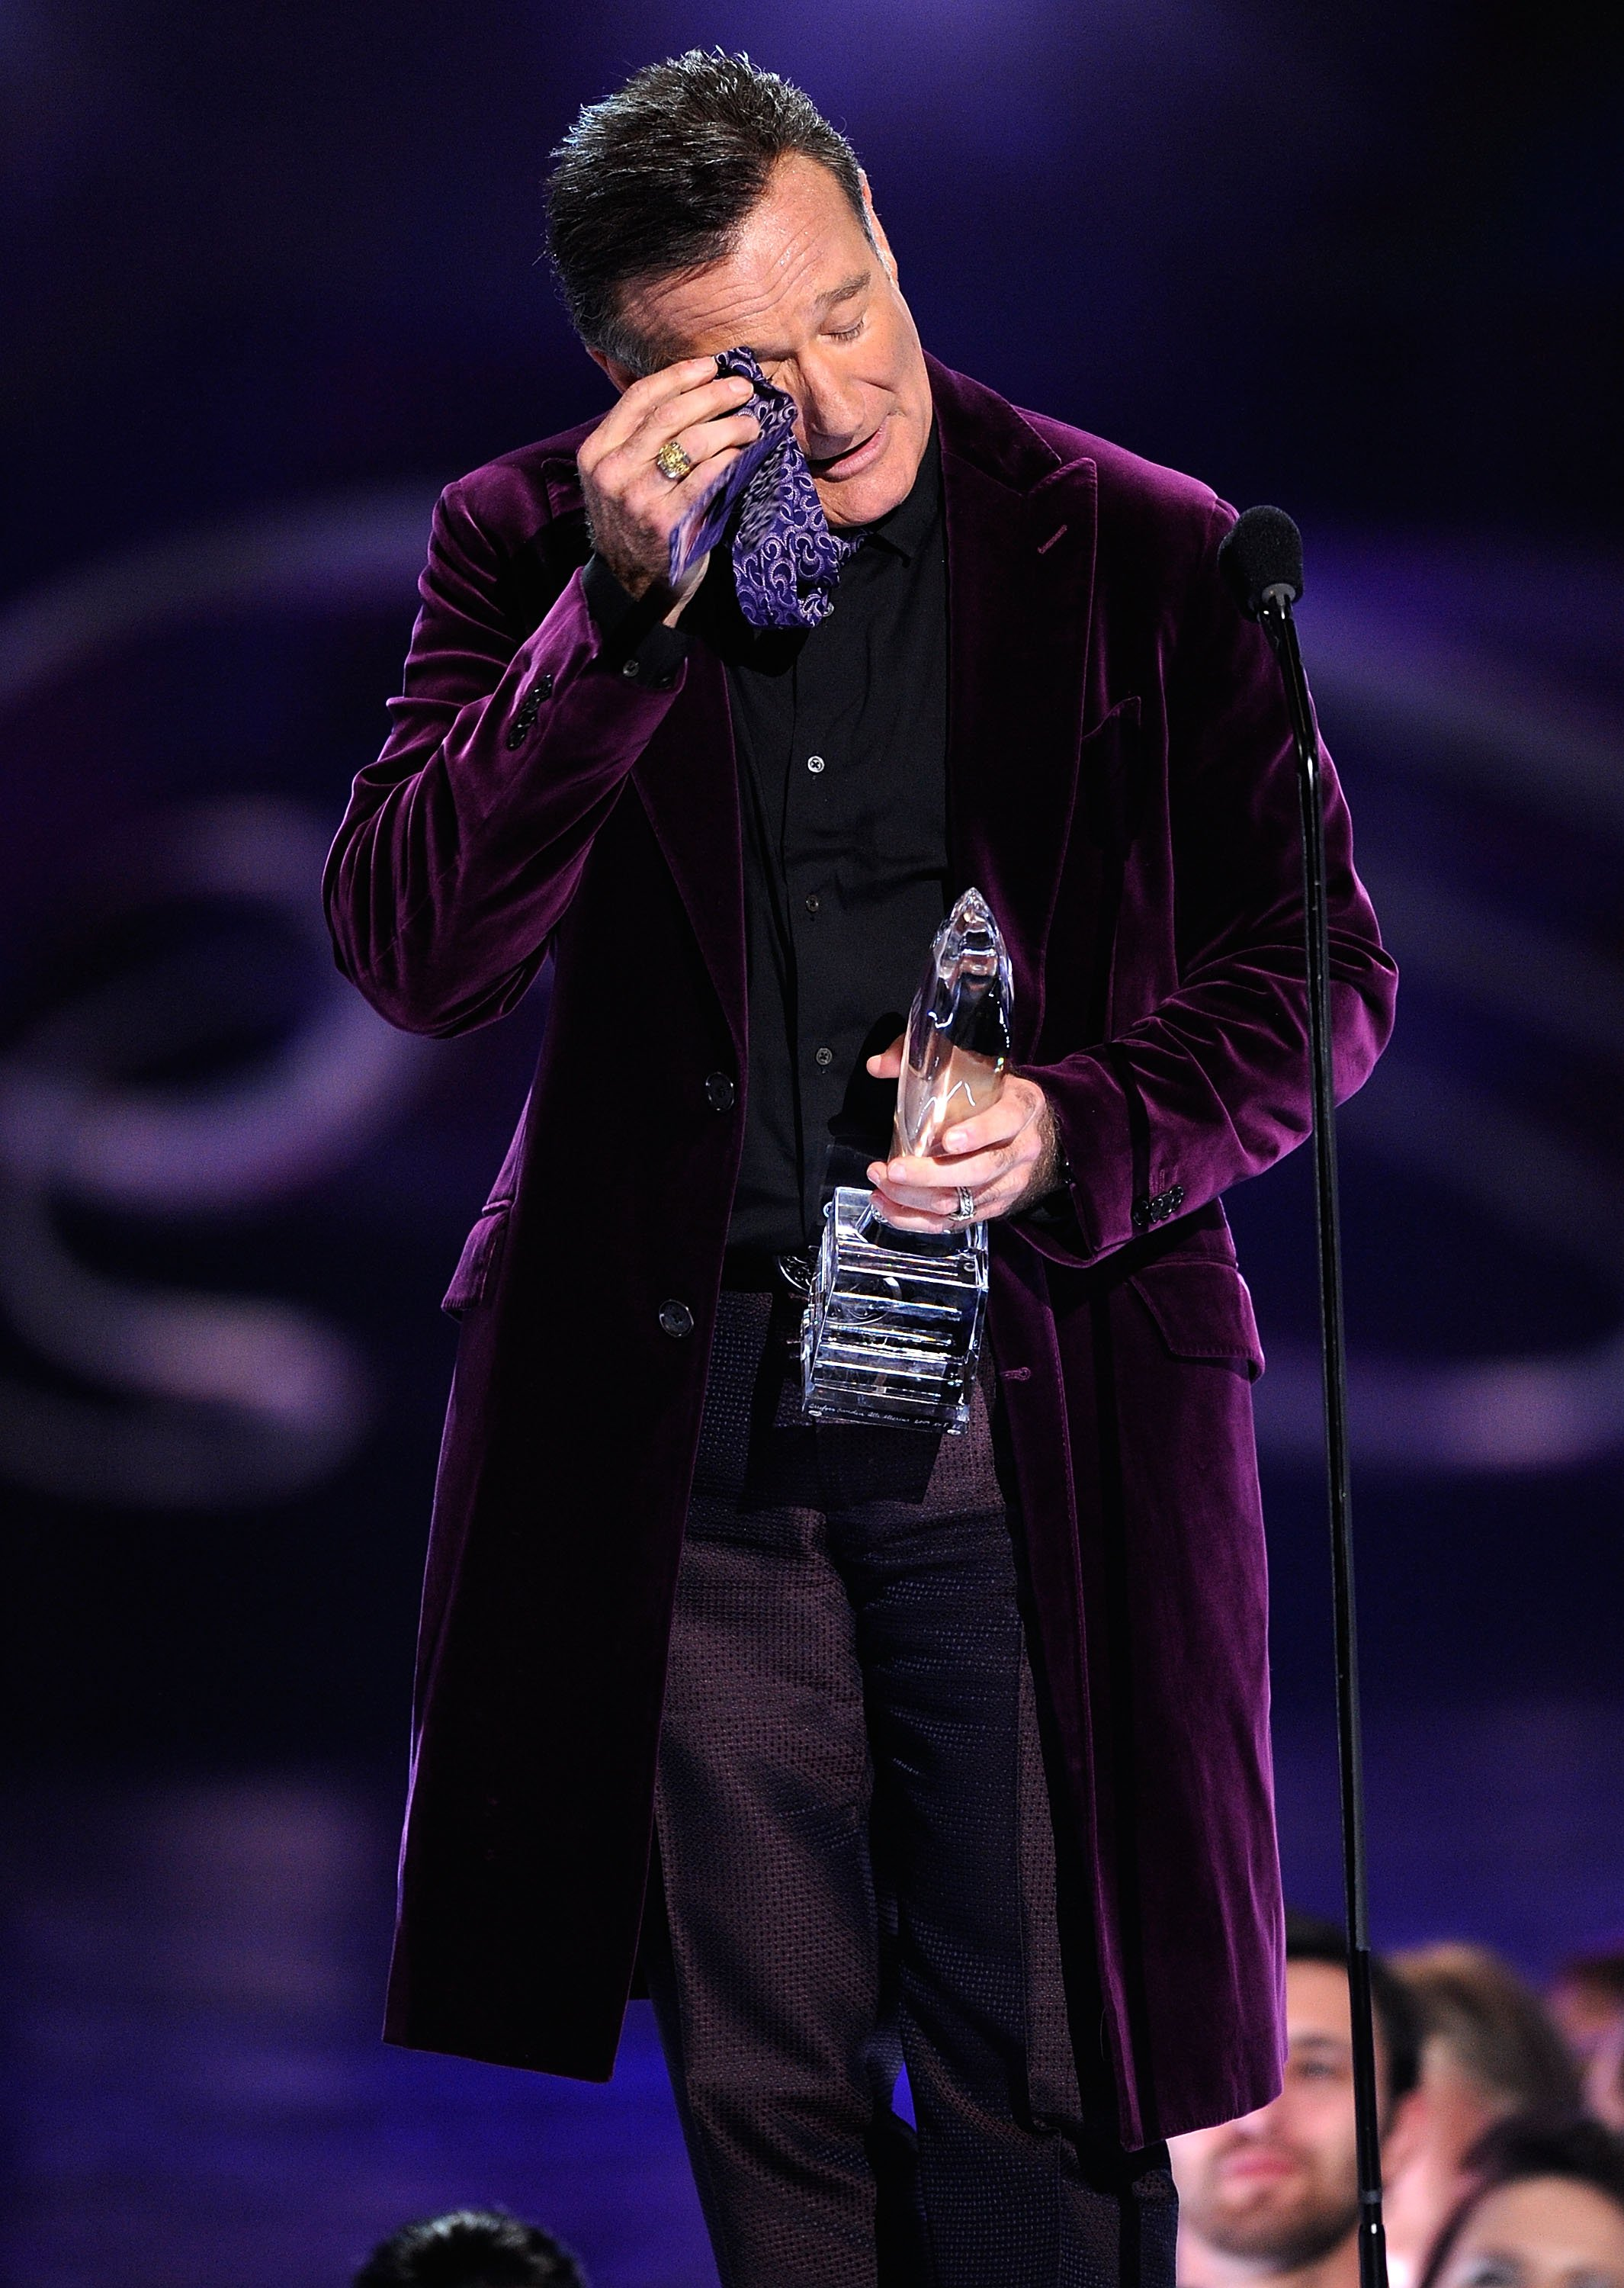 Image Credits: Getty Images / Kevork Djansezian | Actor Robin Williams accepts the Favorite Scene Stealing Guest Star award during the 35th Annual People's Choice Awards held at the Shrine Auditorium on January 7, 2009 in Los Angeles, California.